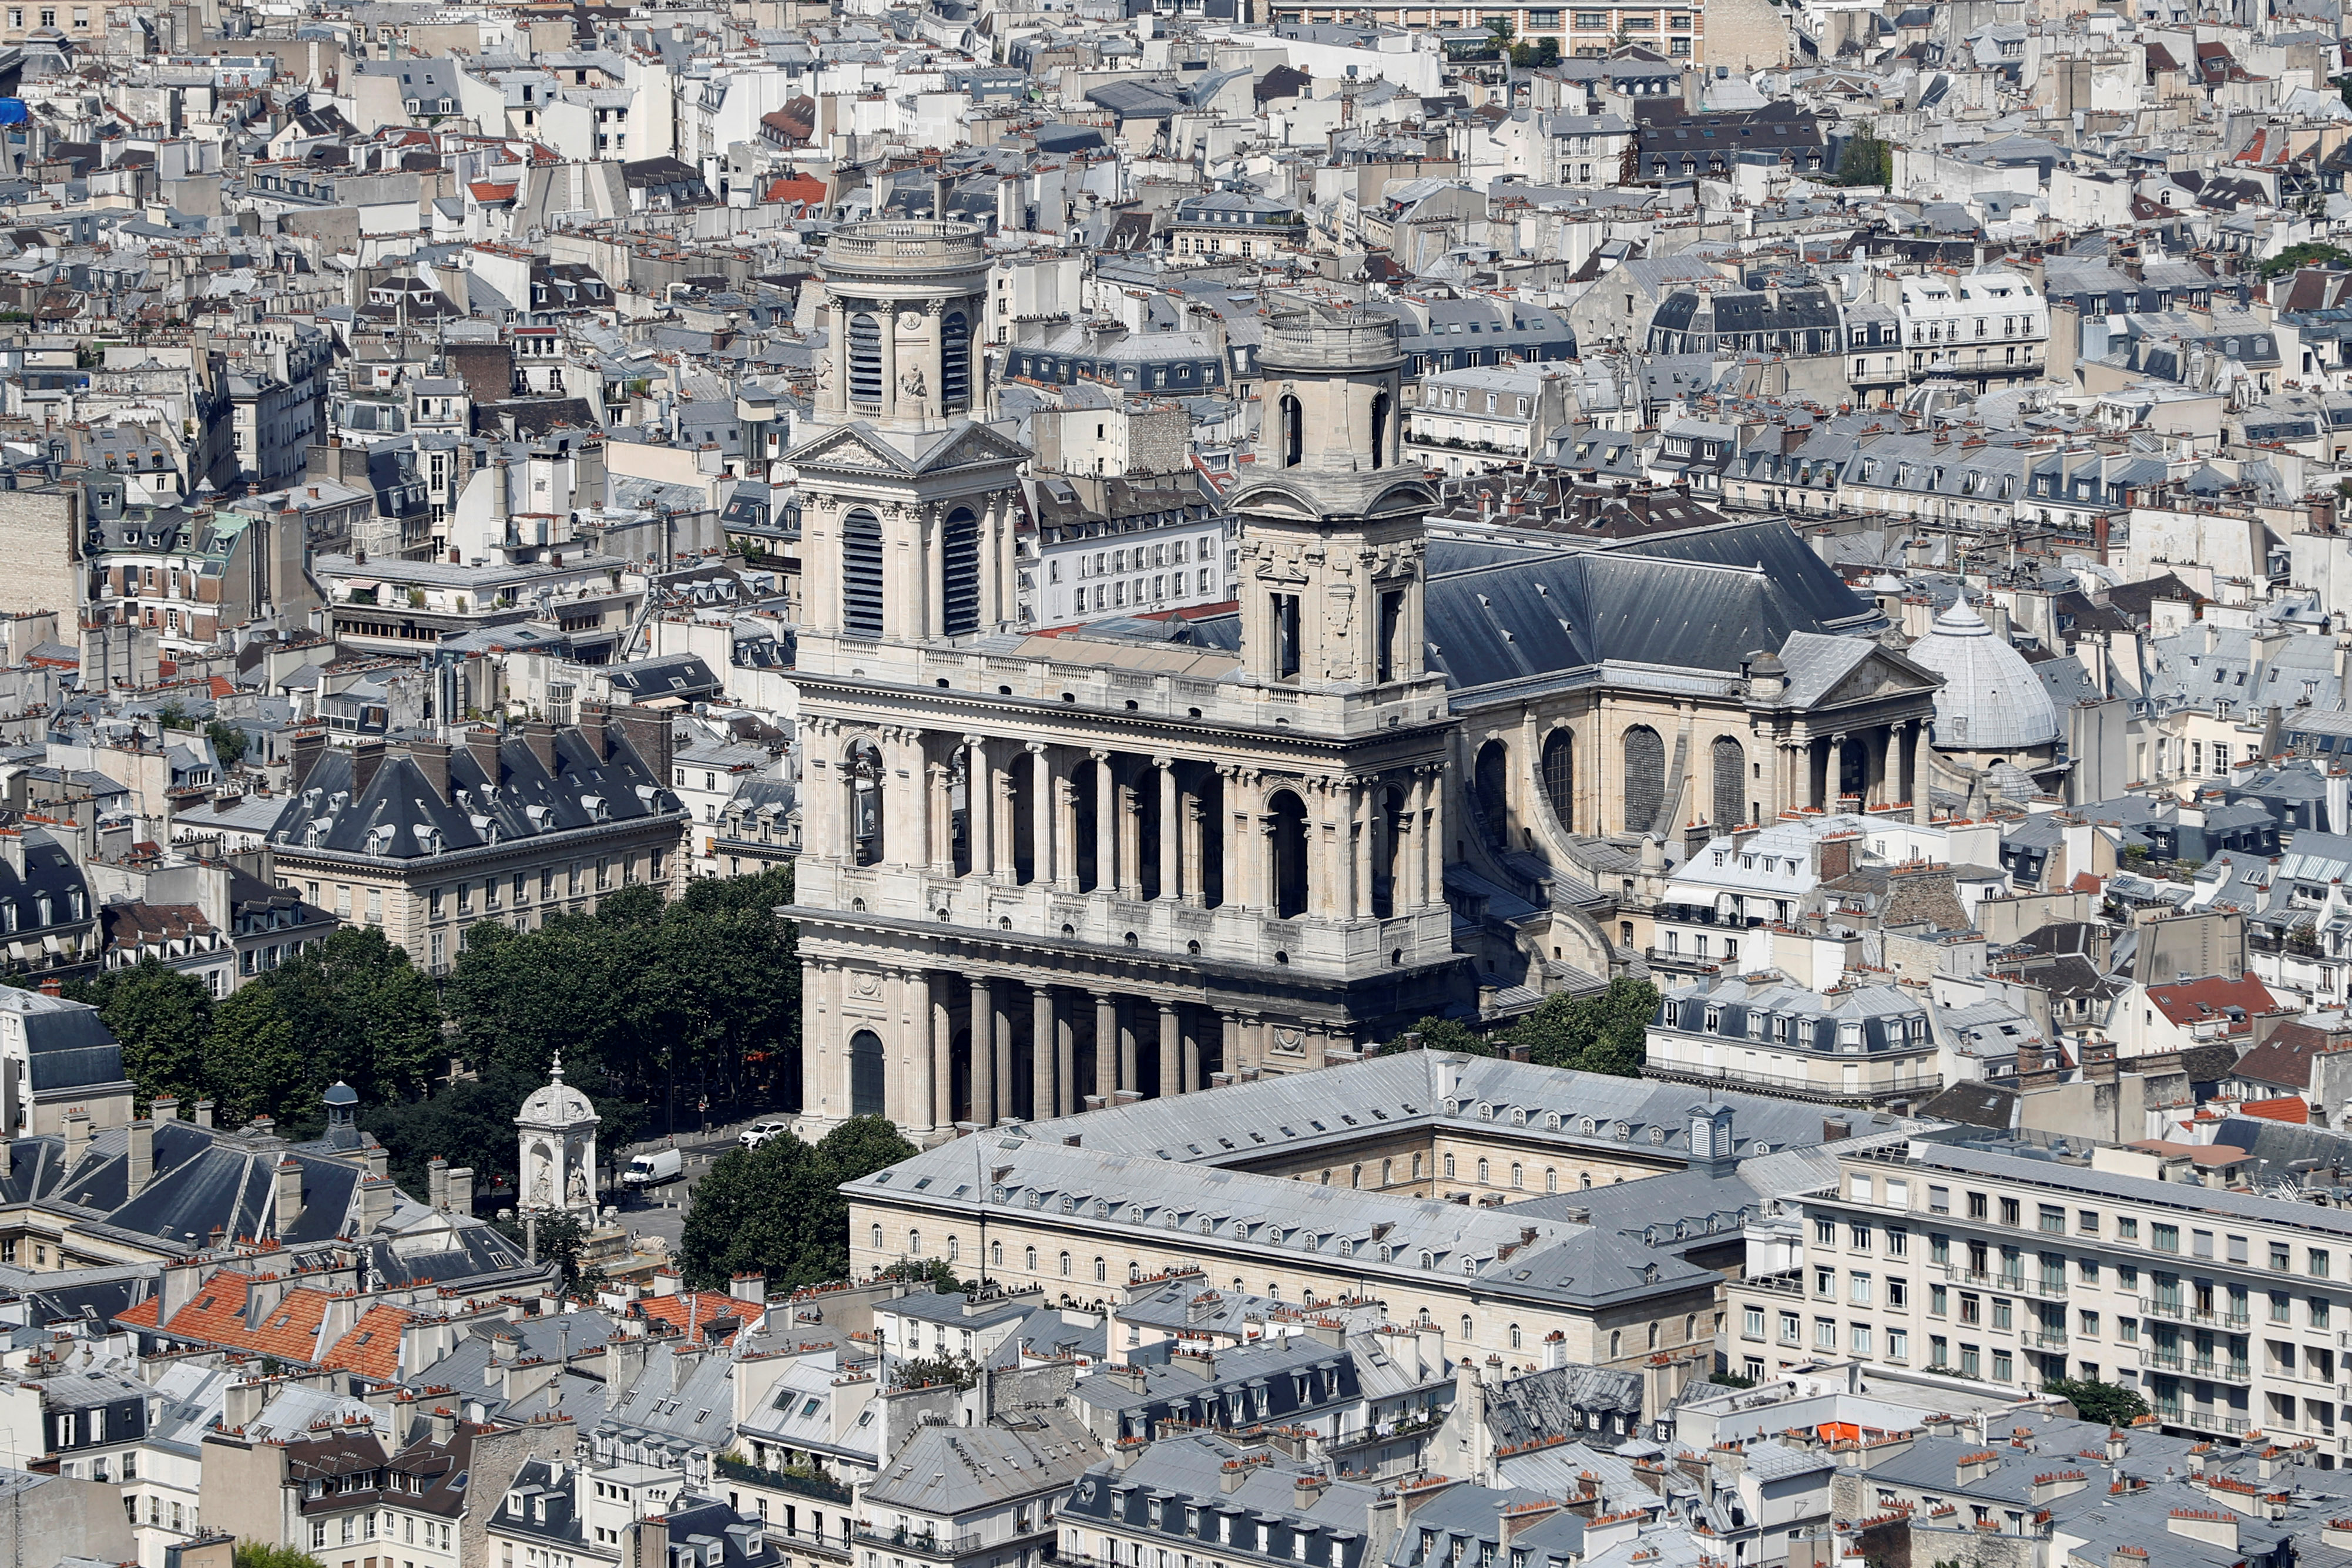 An aerial view shows the Saint-Sulpice chuch in Paris, France, July 8, 2016. REUTERS/Charles Platiau